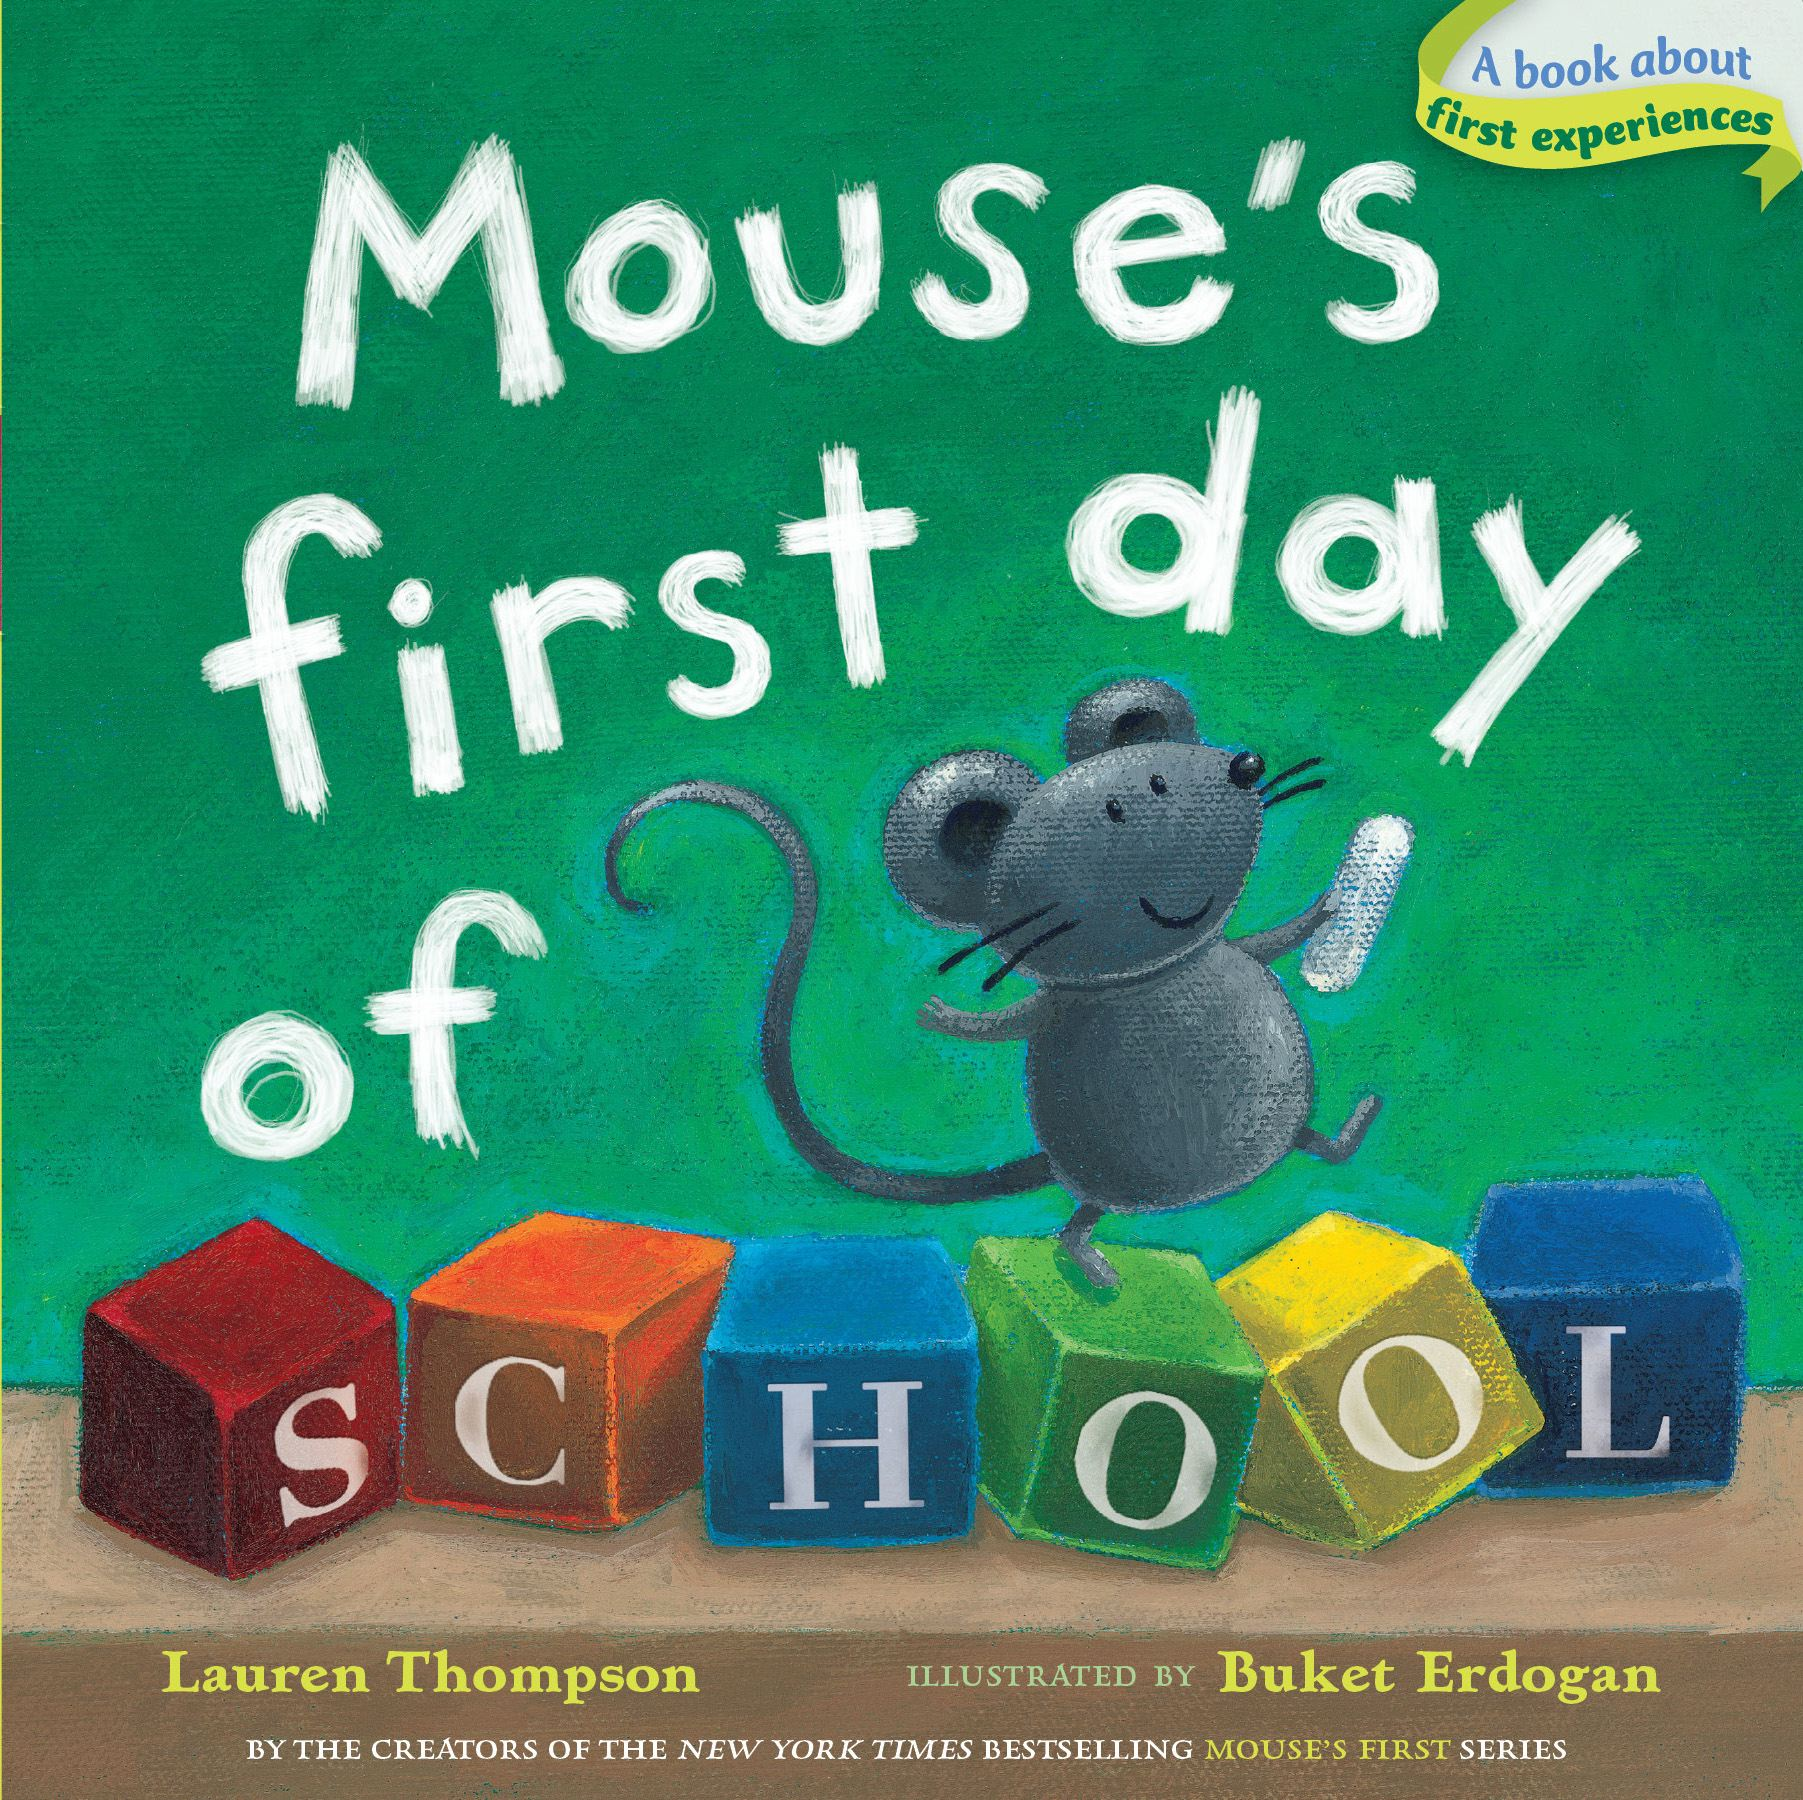 Mouses first day of school 9781416994763 hr